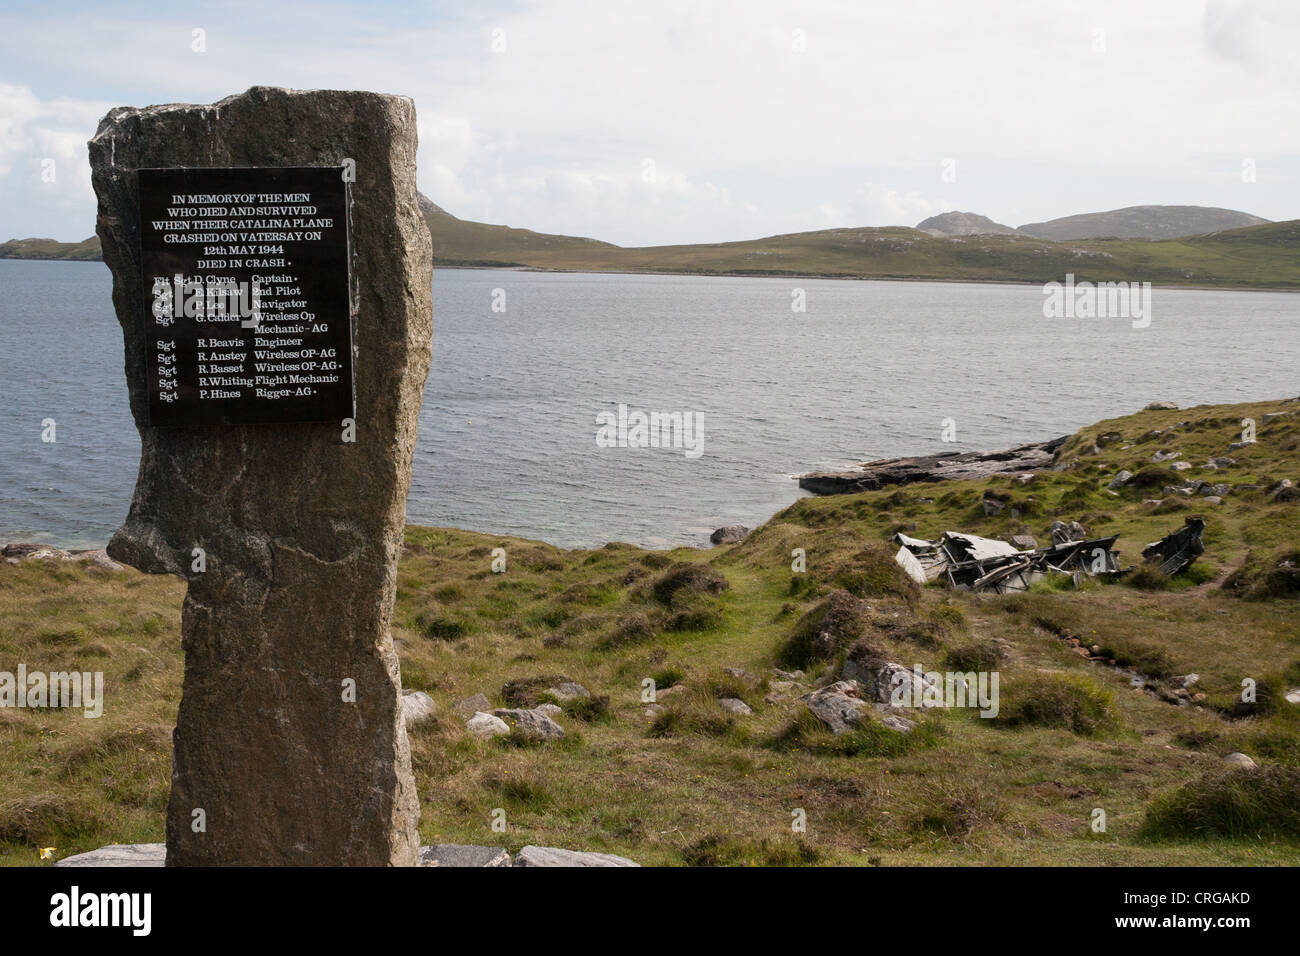 memorial to a crashed catalina airplane on the hebridean island of